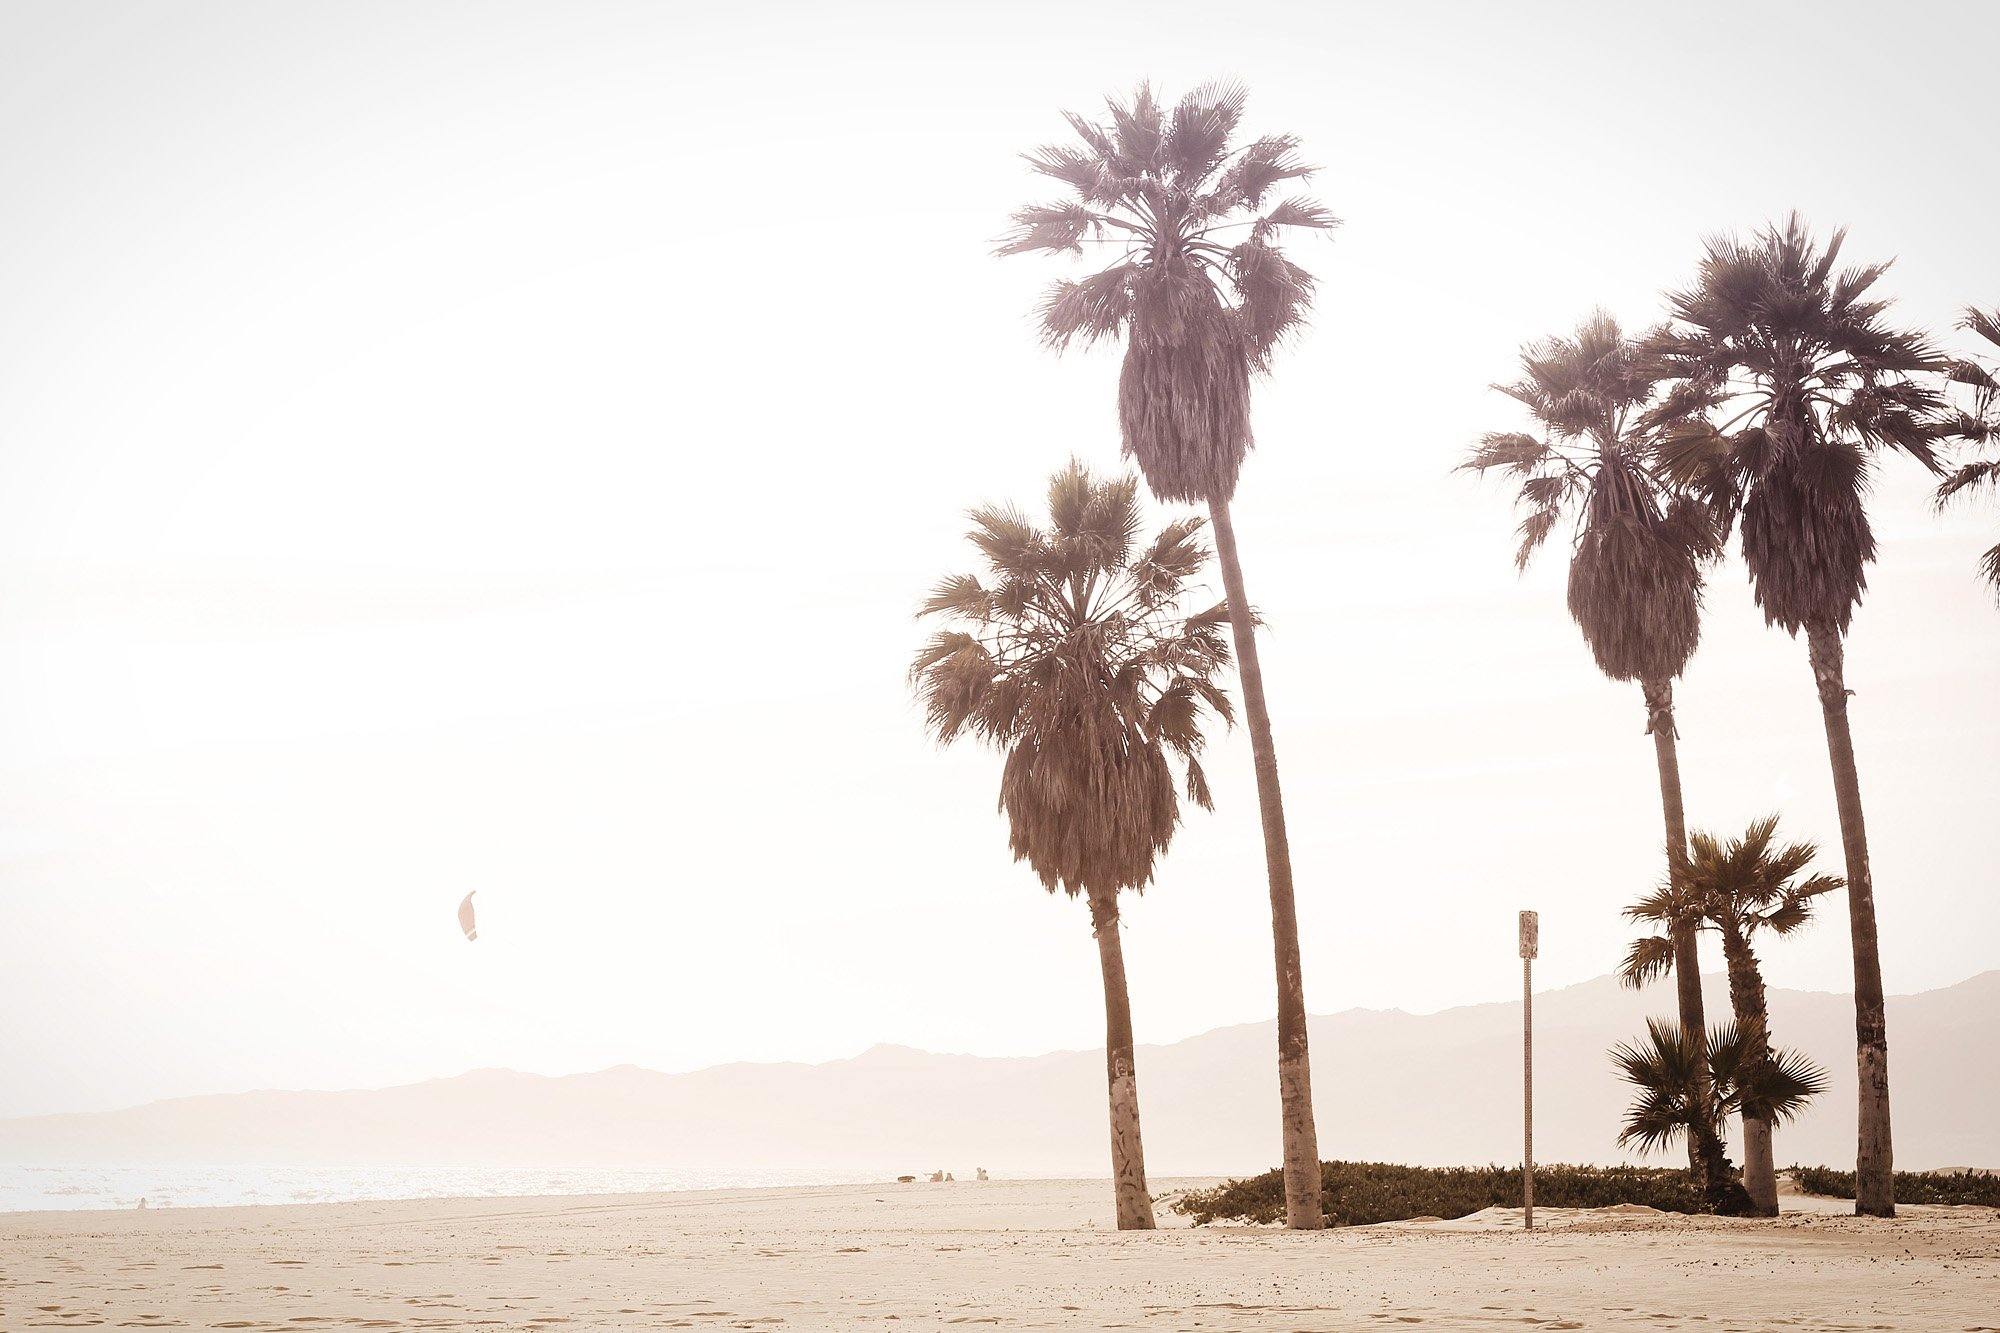 Palm trees and beach of the West Coast of America